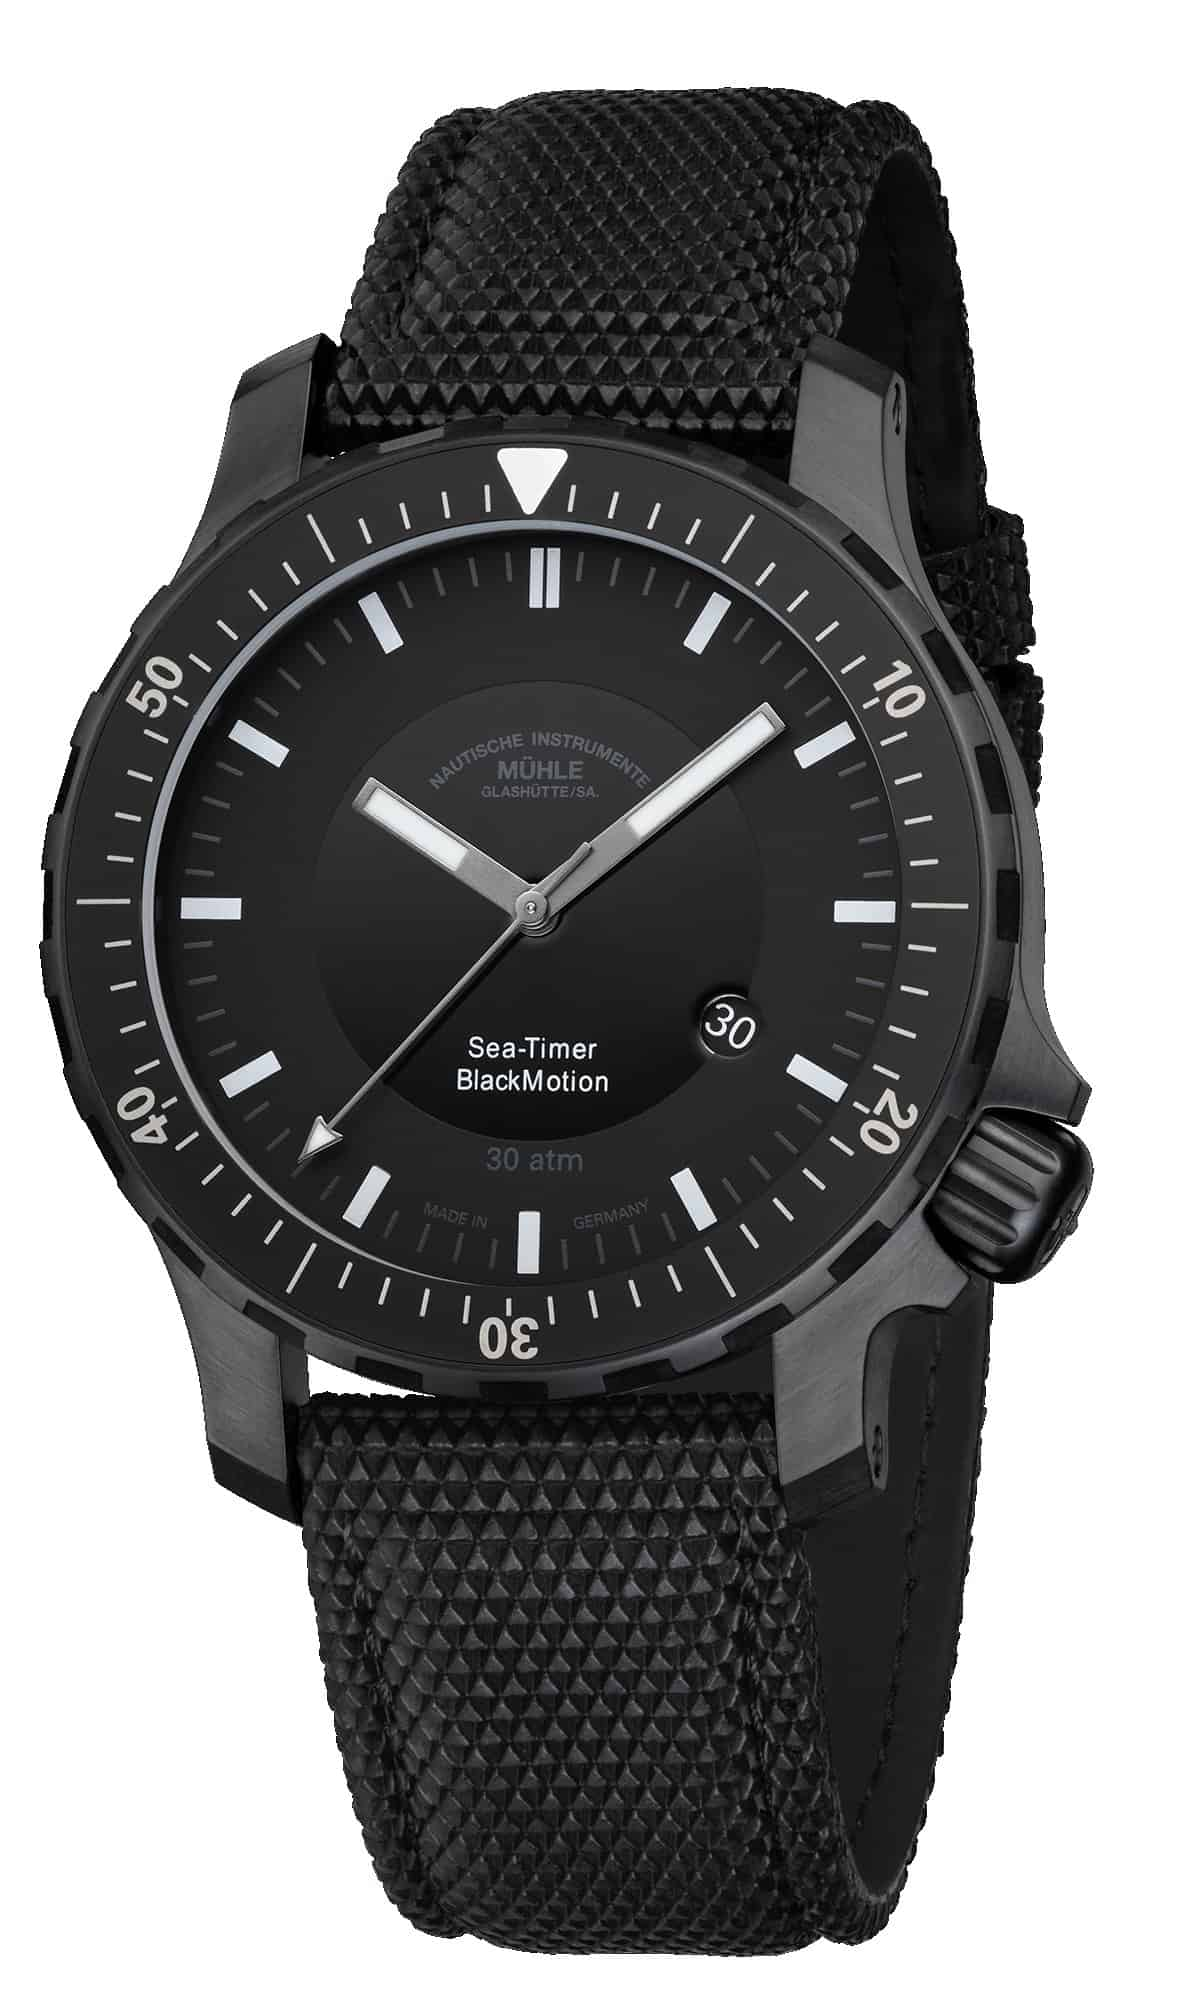 Mühle-Glashütte Sea-Timer BlackMotion für 2.200 €